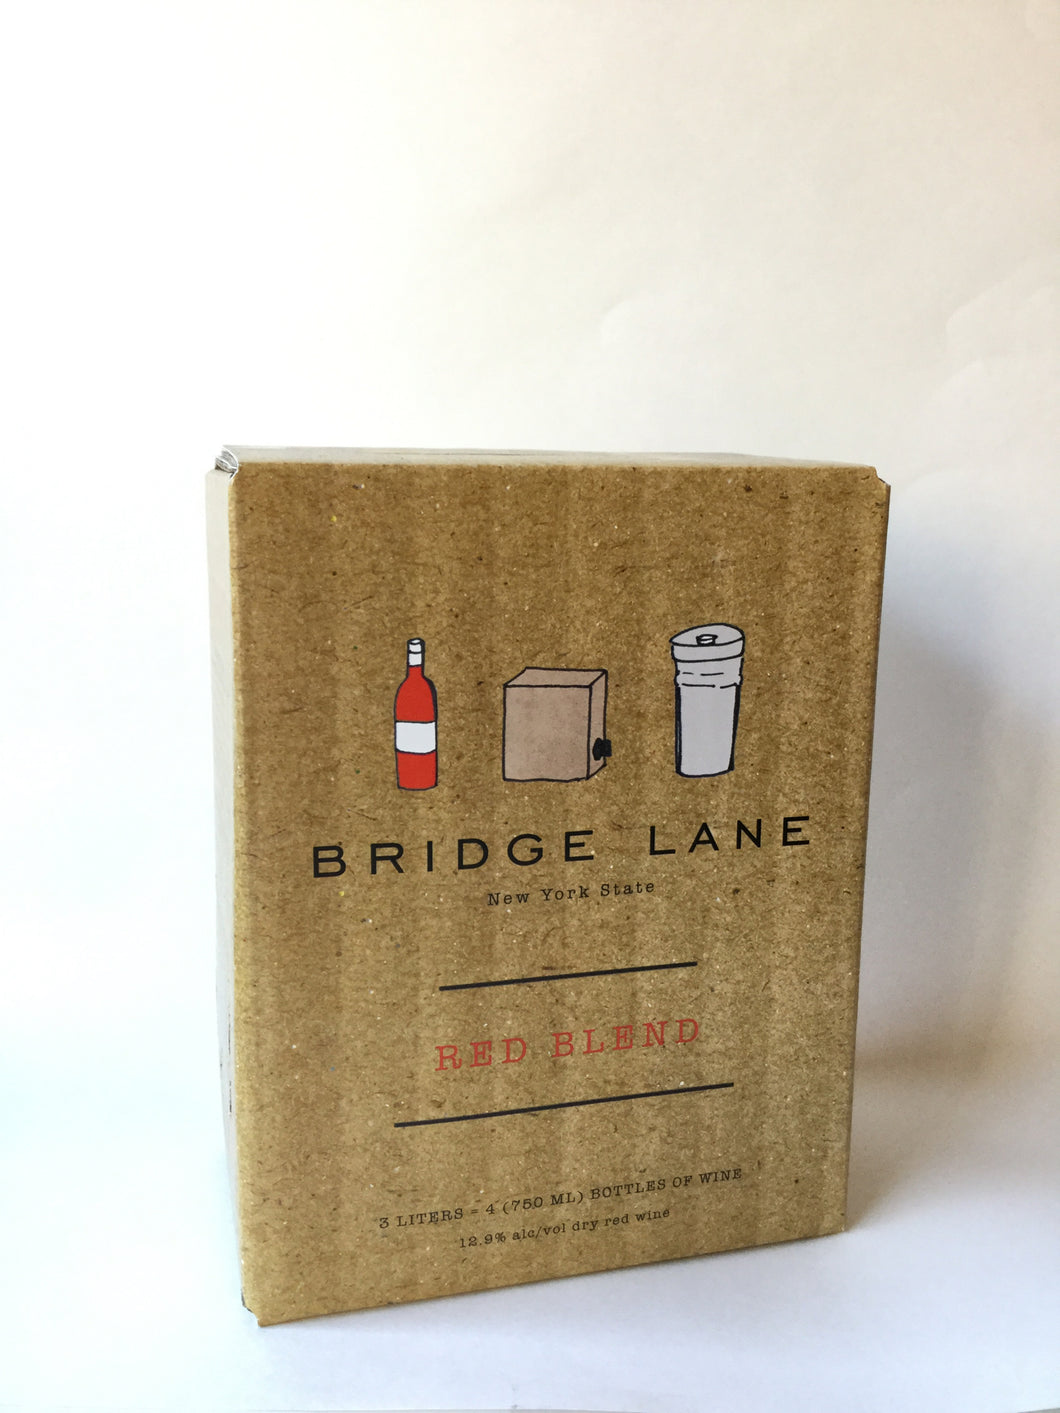 Bridge Lane Red Blend 3 Liter Bag-in-Box - Frankly Wines